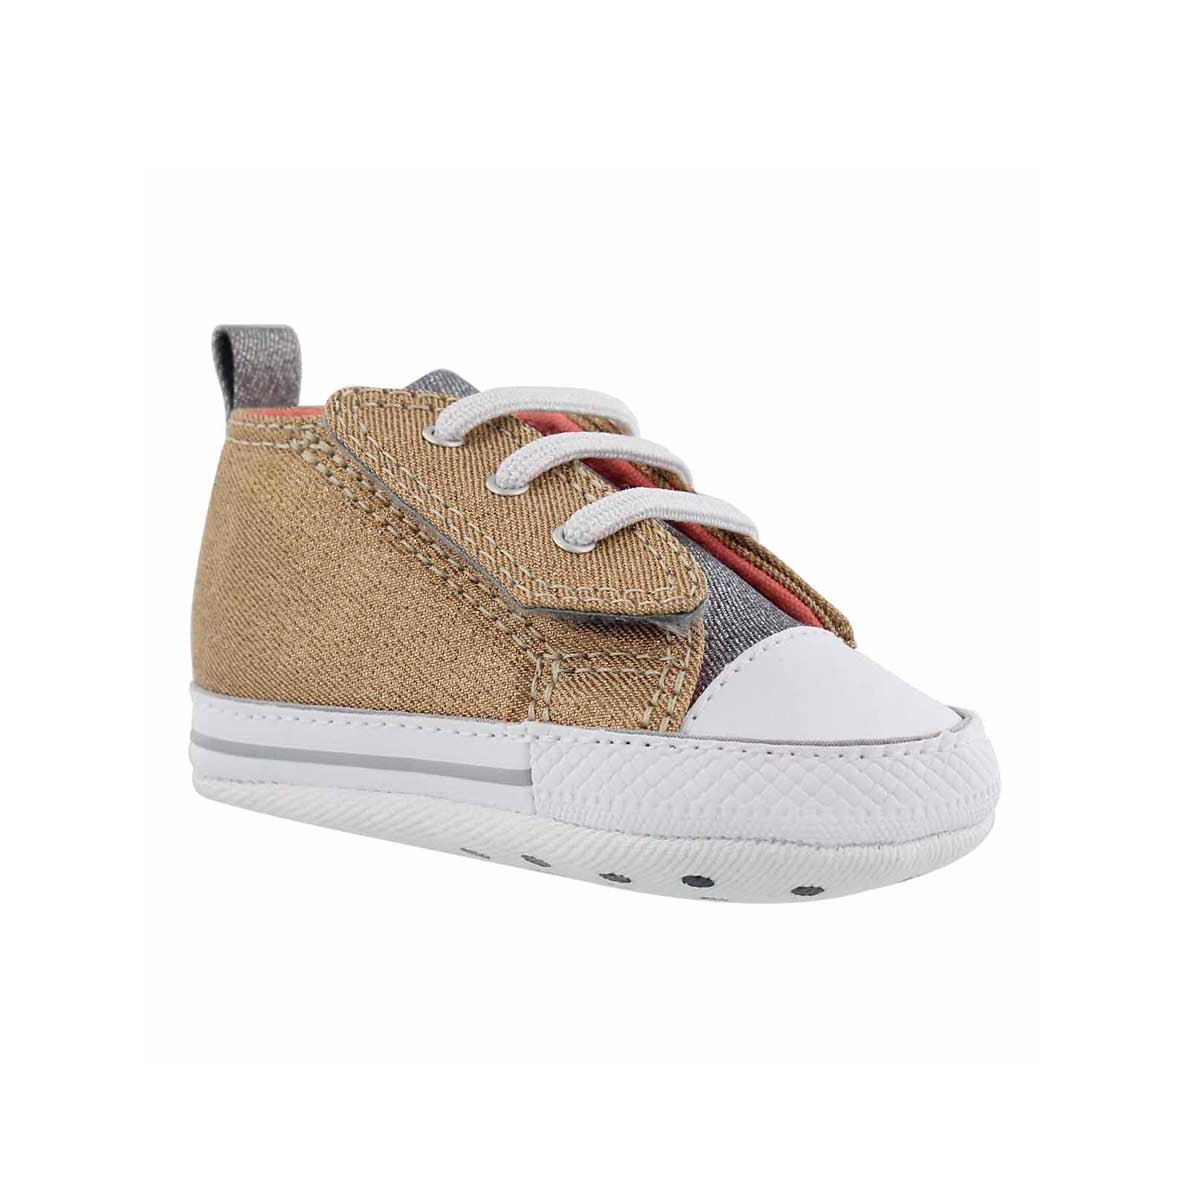 Infants' CT ALL STAR pale gold sneakers